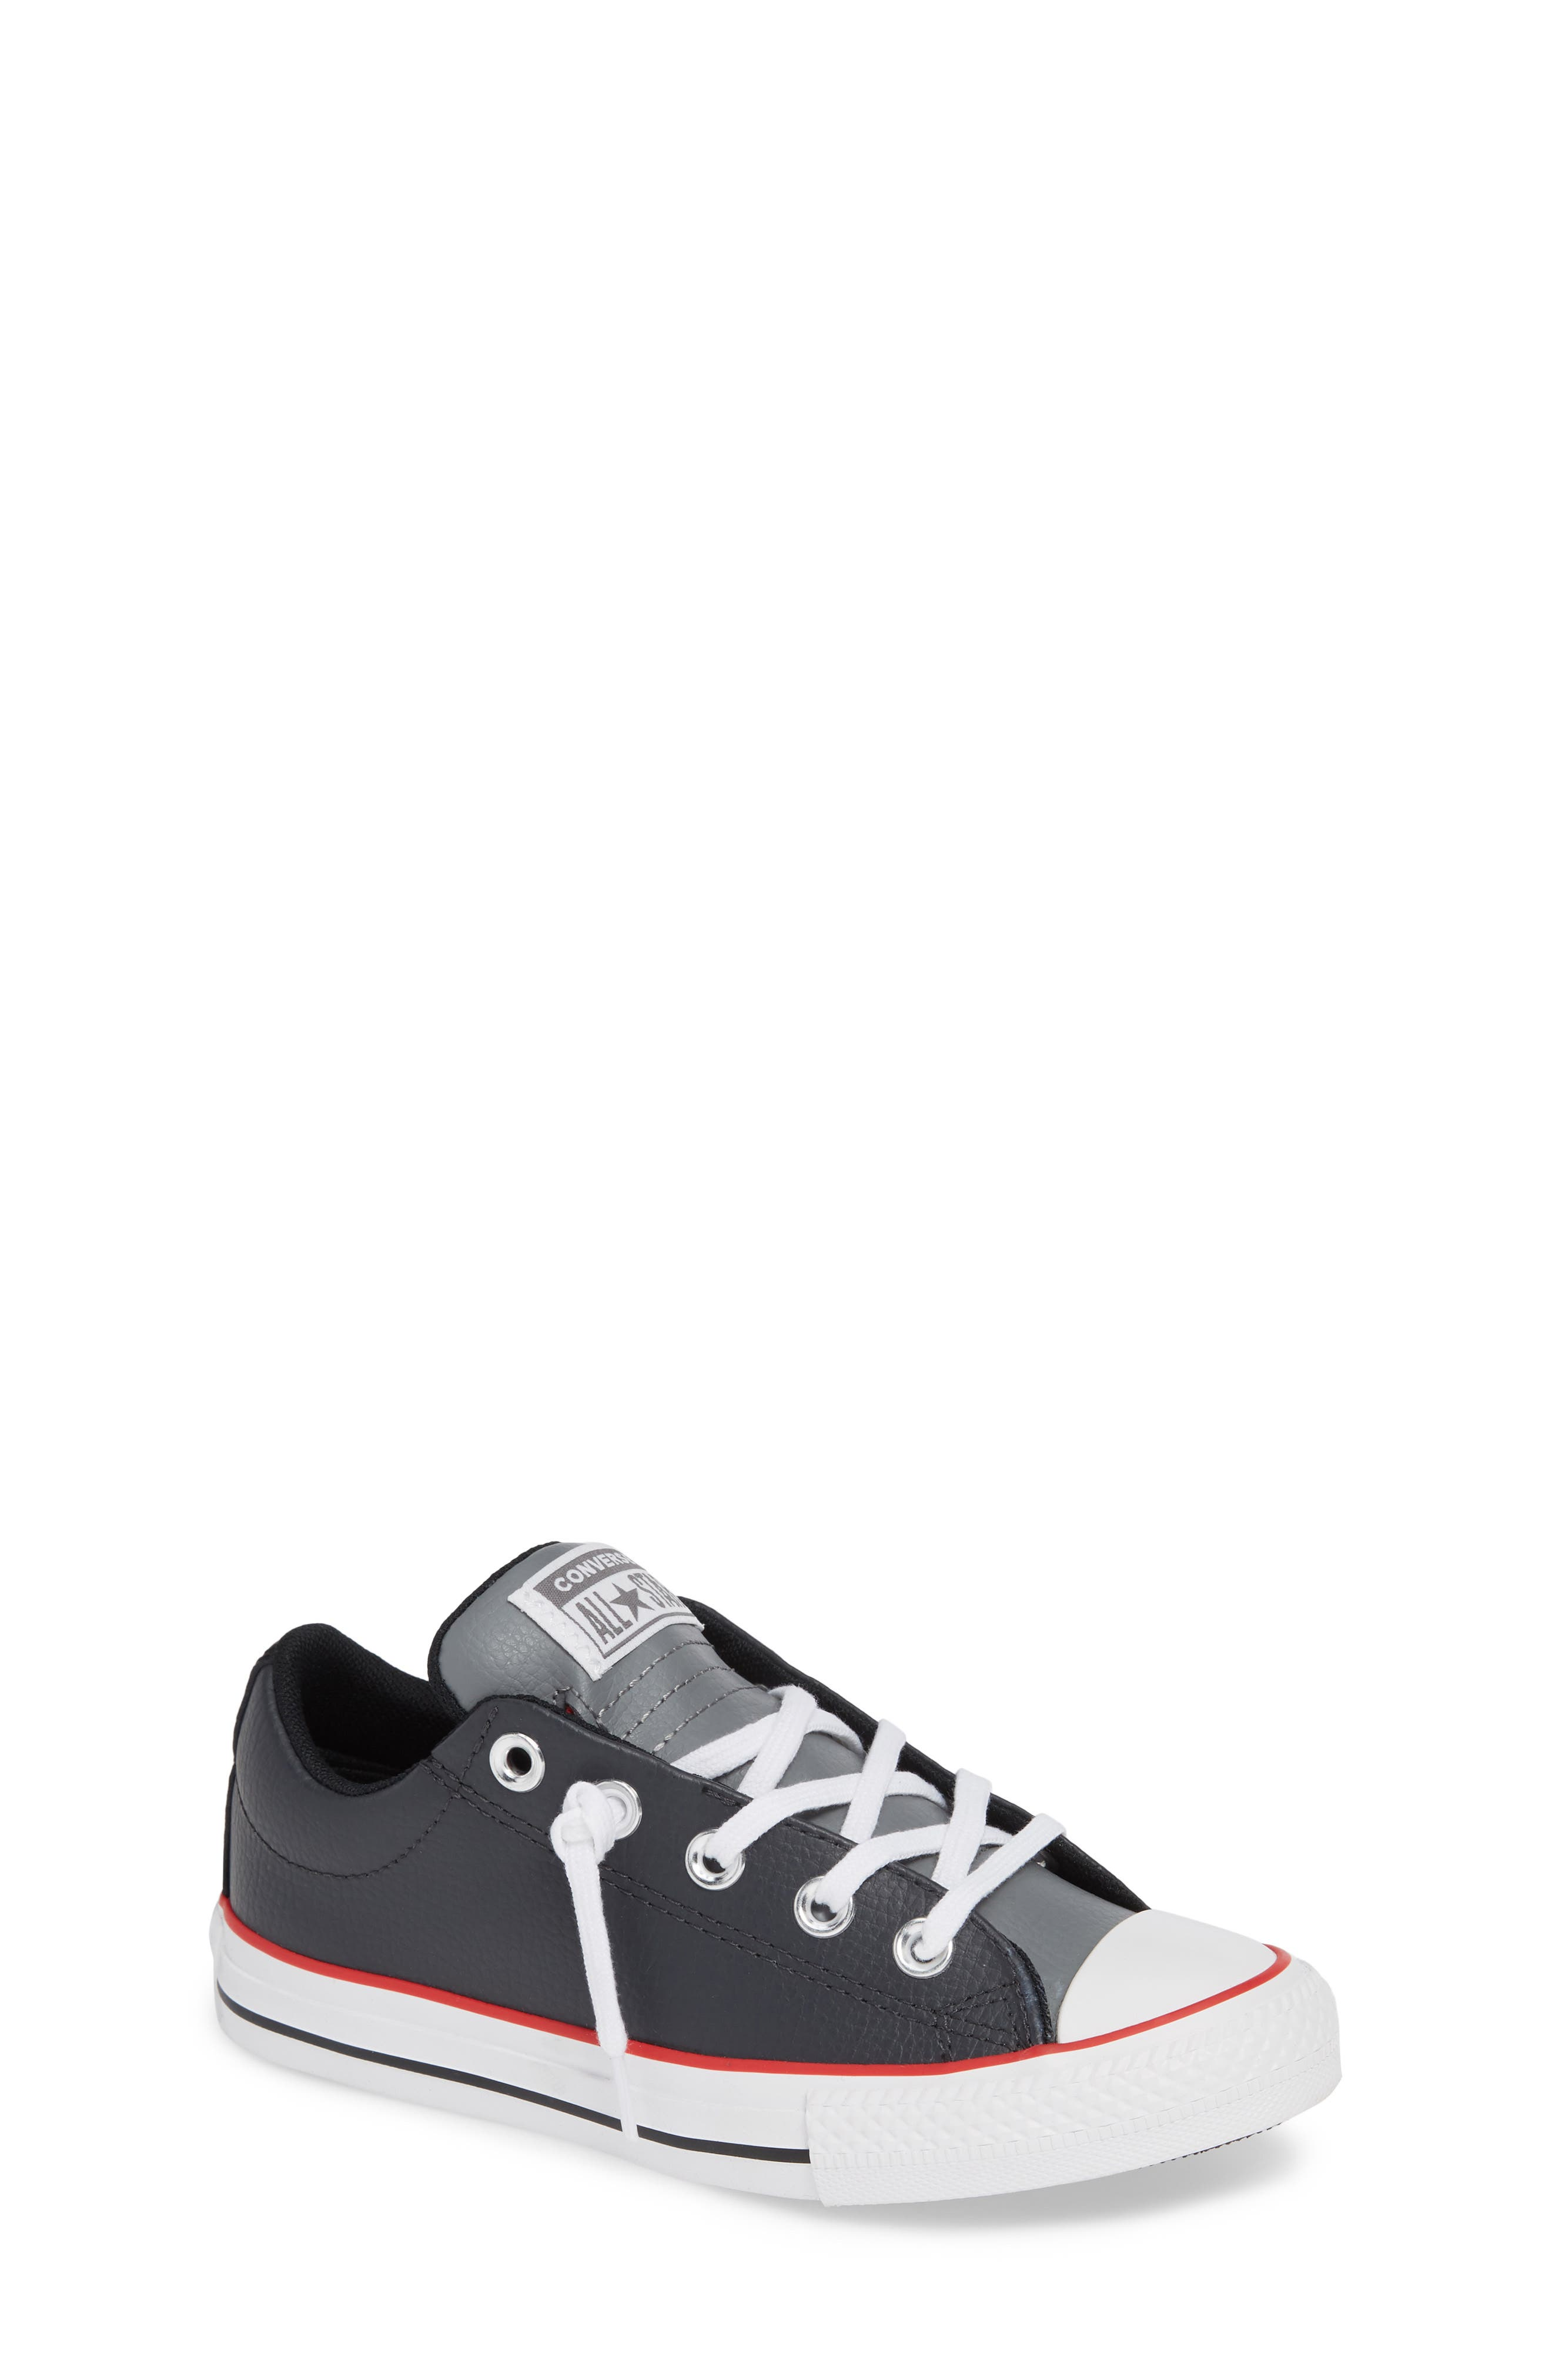 Chuck Taylor<sup>®</sup> All Star<sup>®</sup> Collegiate Street Leather Slip-On Sneaker,                             Main thumbnail 1, color,                             ALMOST BLACK